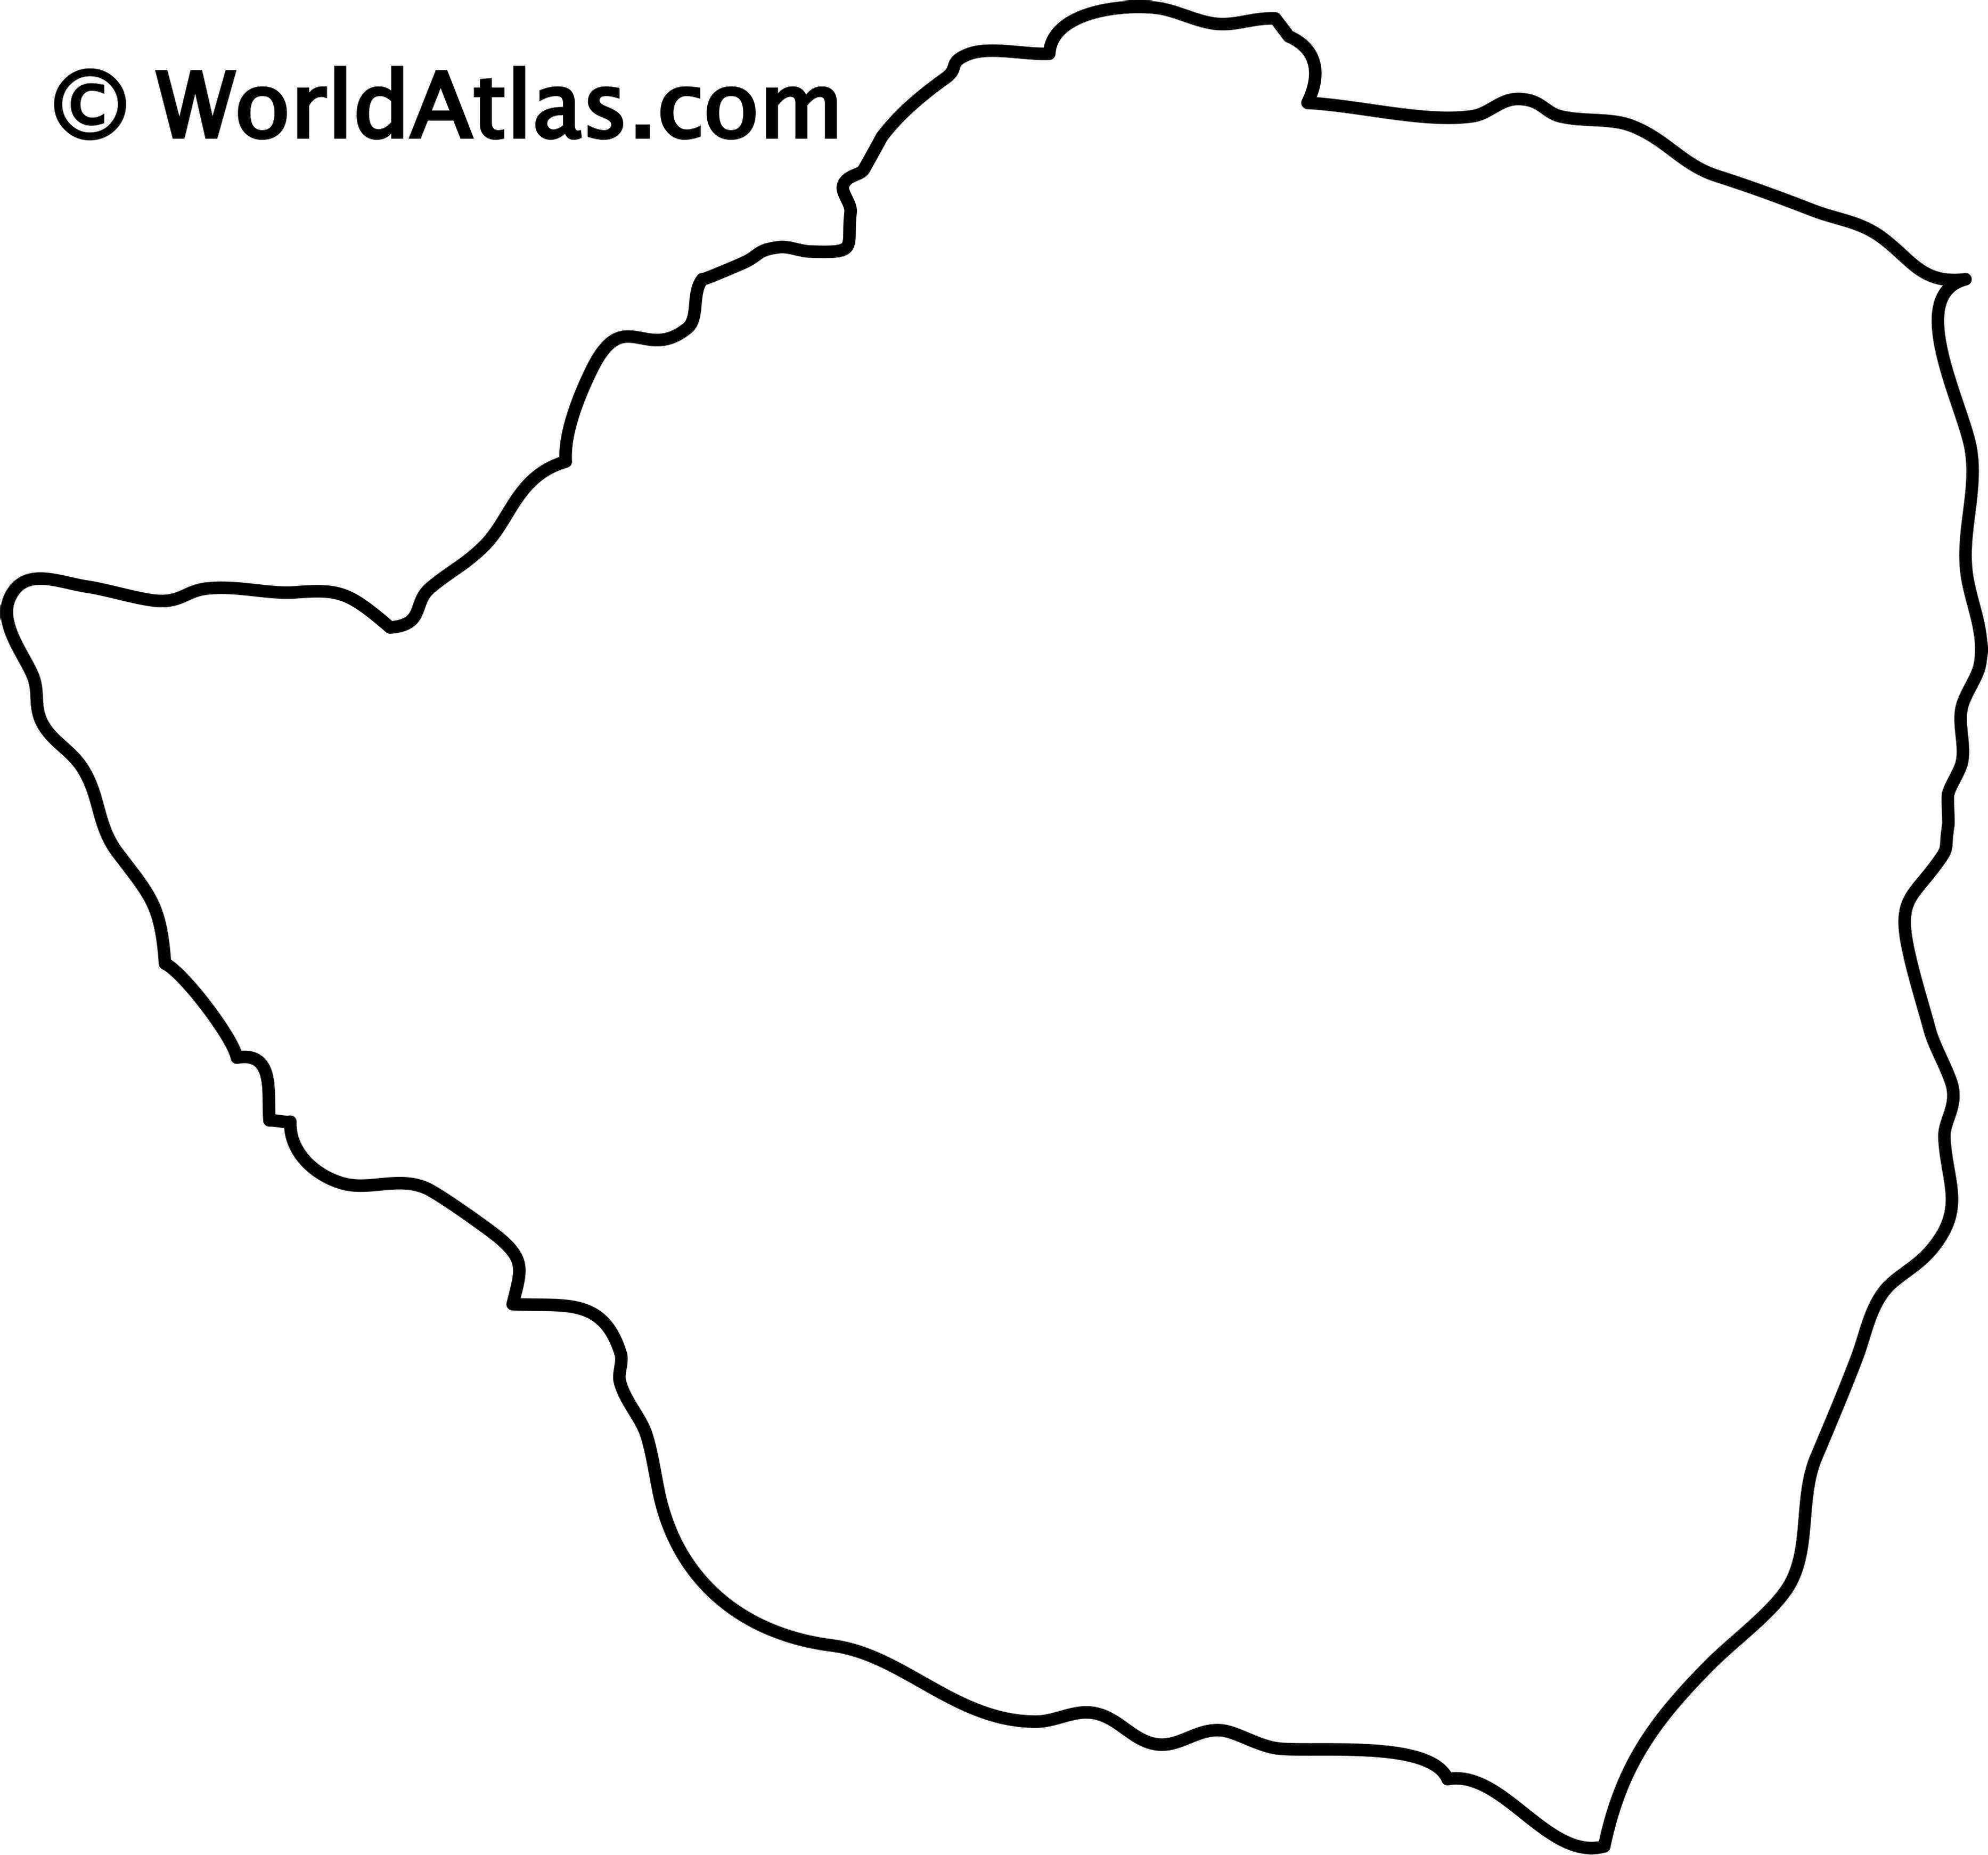 Blank Outline map of Zimbabwe